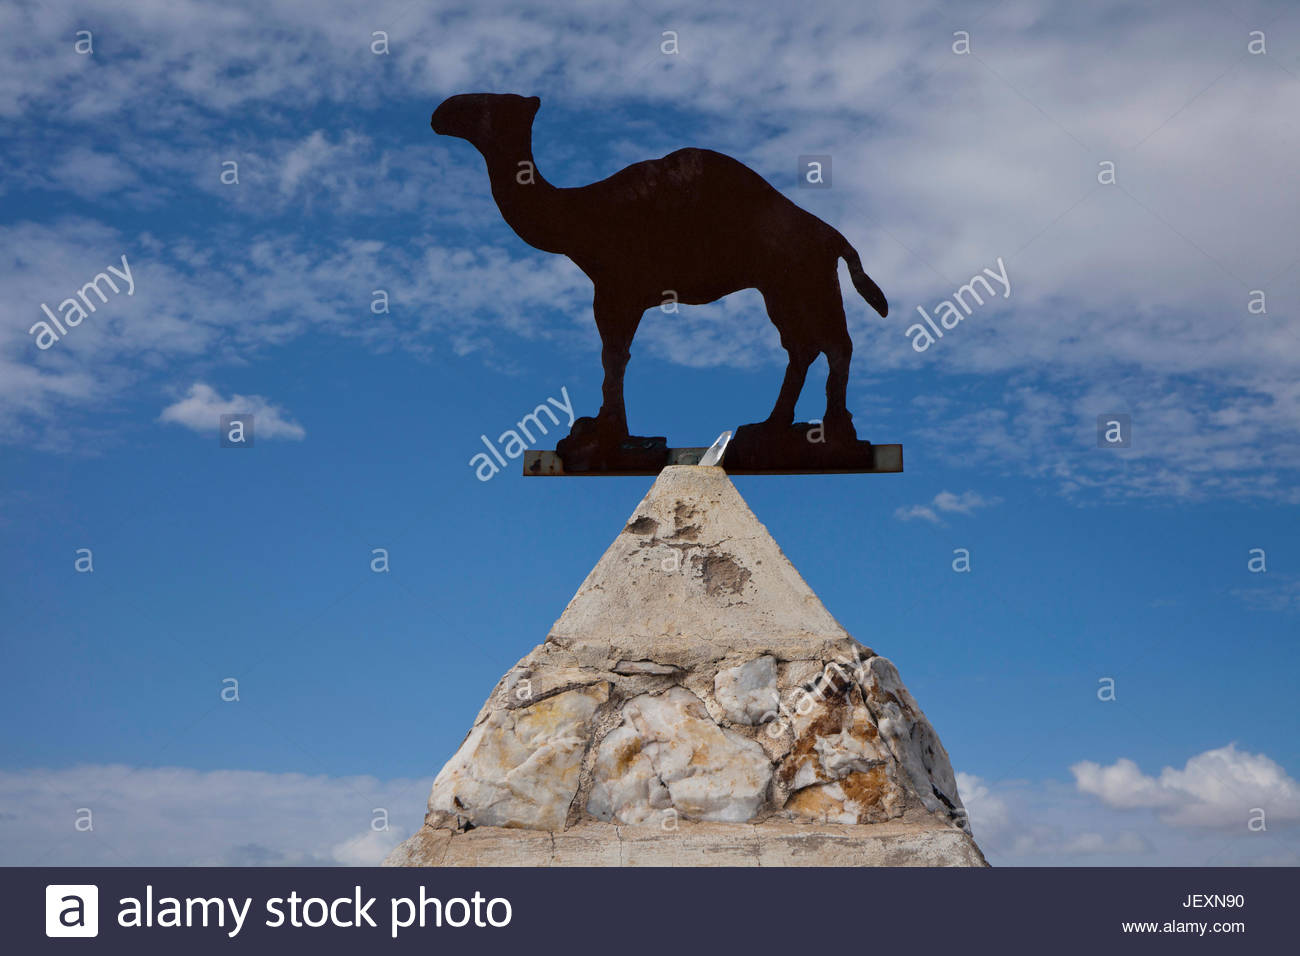 A monument in a cemetery to Hi Jolly, a Syrian born camel herder who was recruited to manage the Army's camels - Stock Image